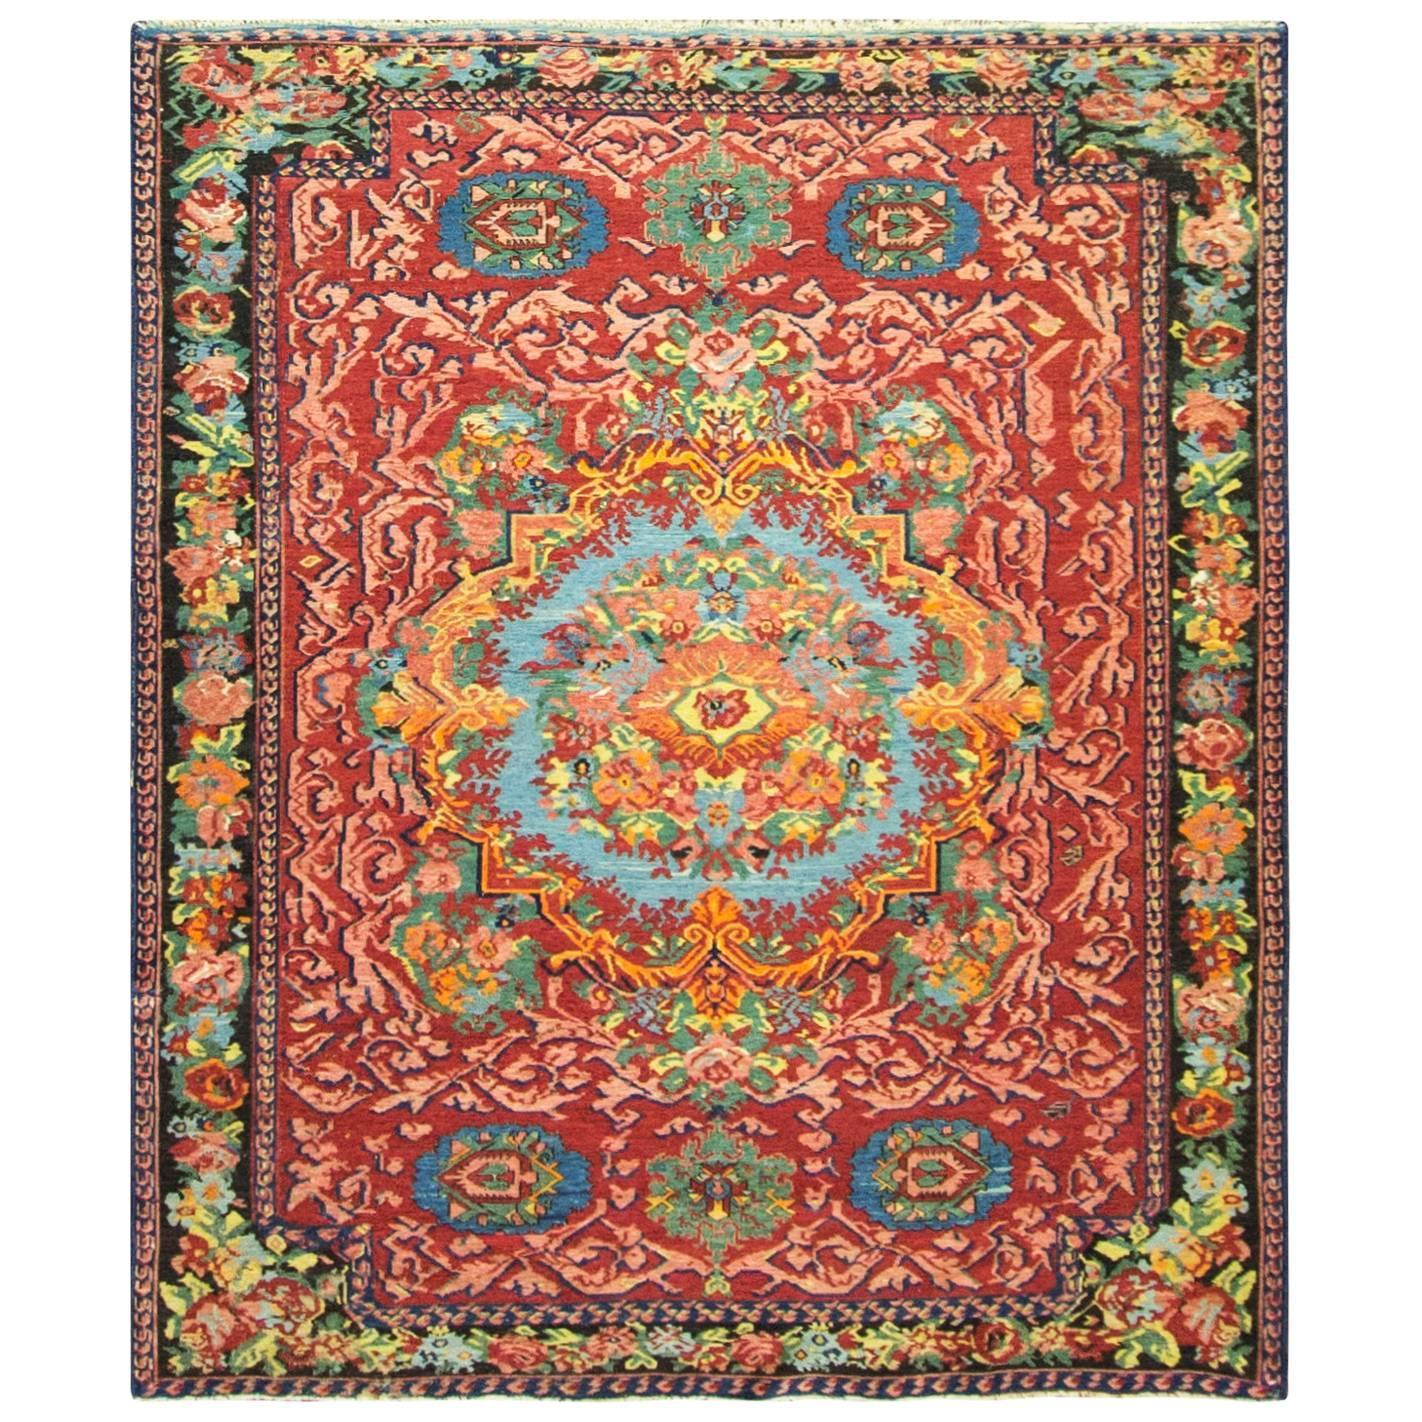 Colorful Antique Karabagh Soumak For Sale At 1stdibs